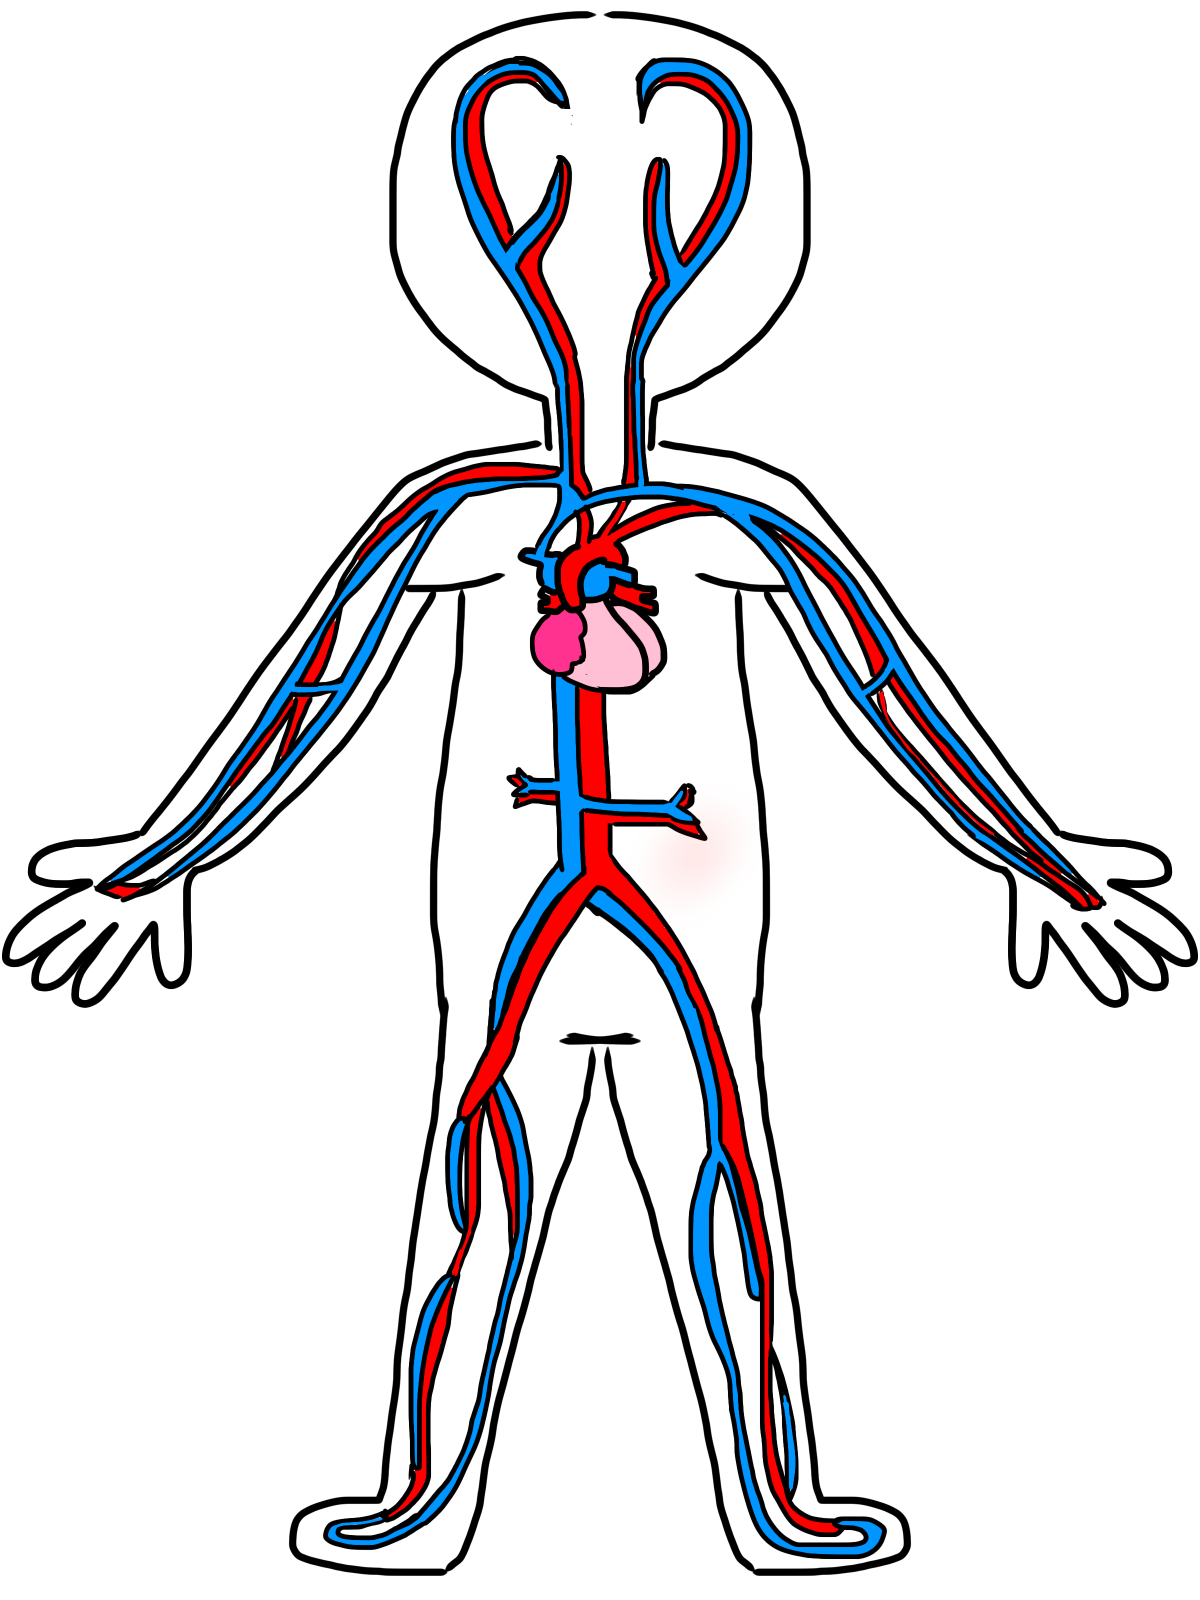 circulatory system no labels - photo #35